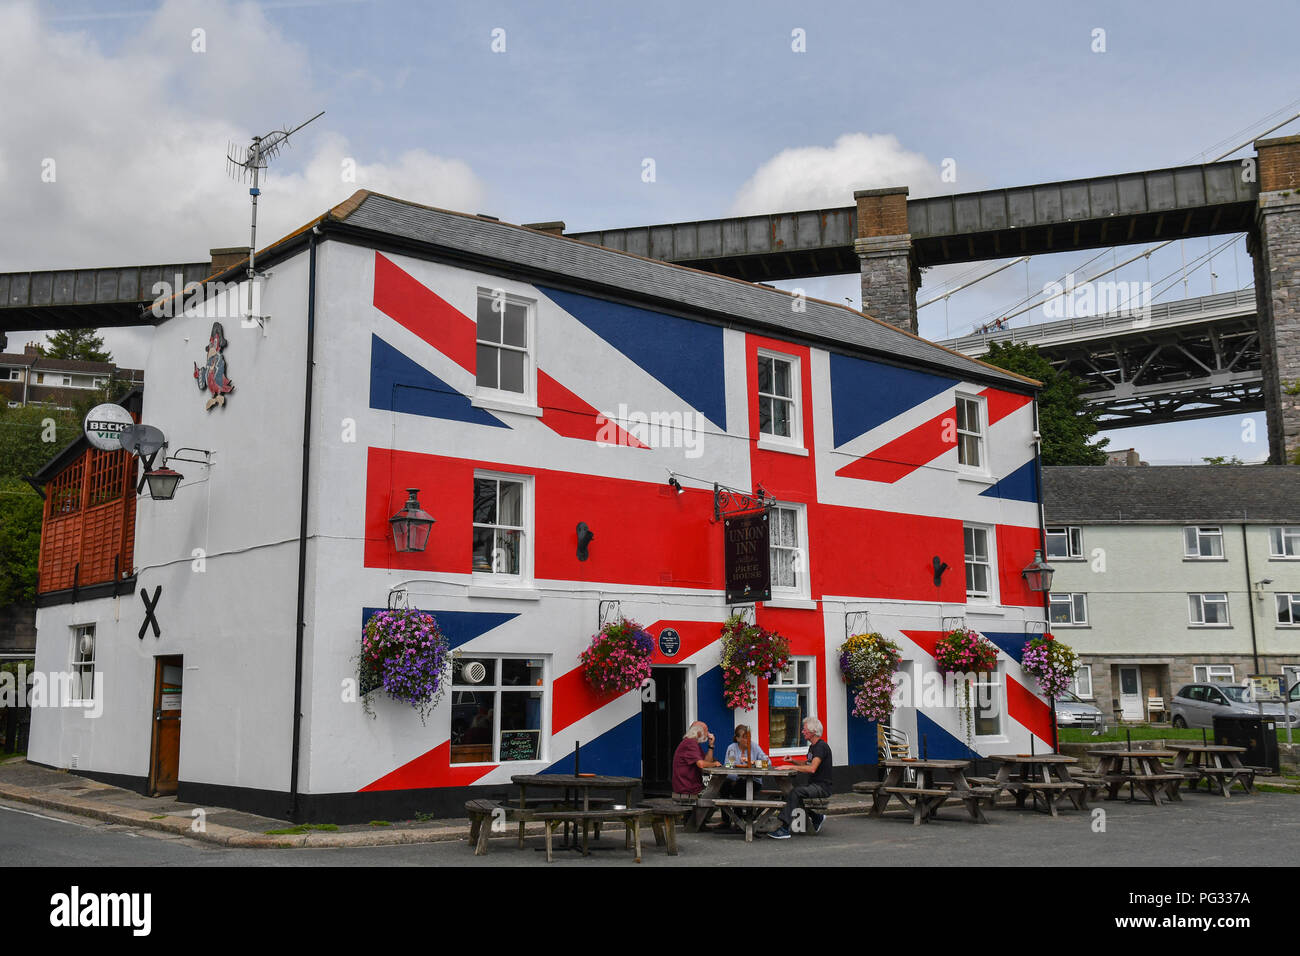 Saltash, Cornwall, UK. 23rd Aug, 2018. UK Weather. Sunny luchtime at Saltash. Seen here people enjoying a lunchtime pint outside the Union Inn, no doubt debating the current Brexit strategy. Credit: Simon Maycock/Alamy Live News - Stock Image